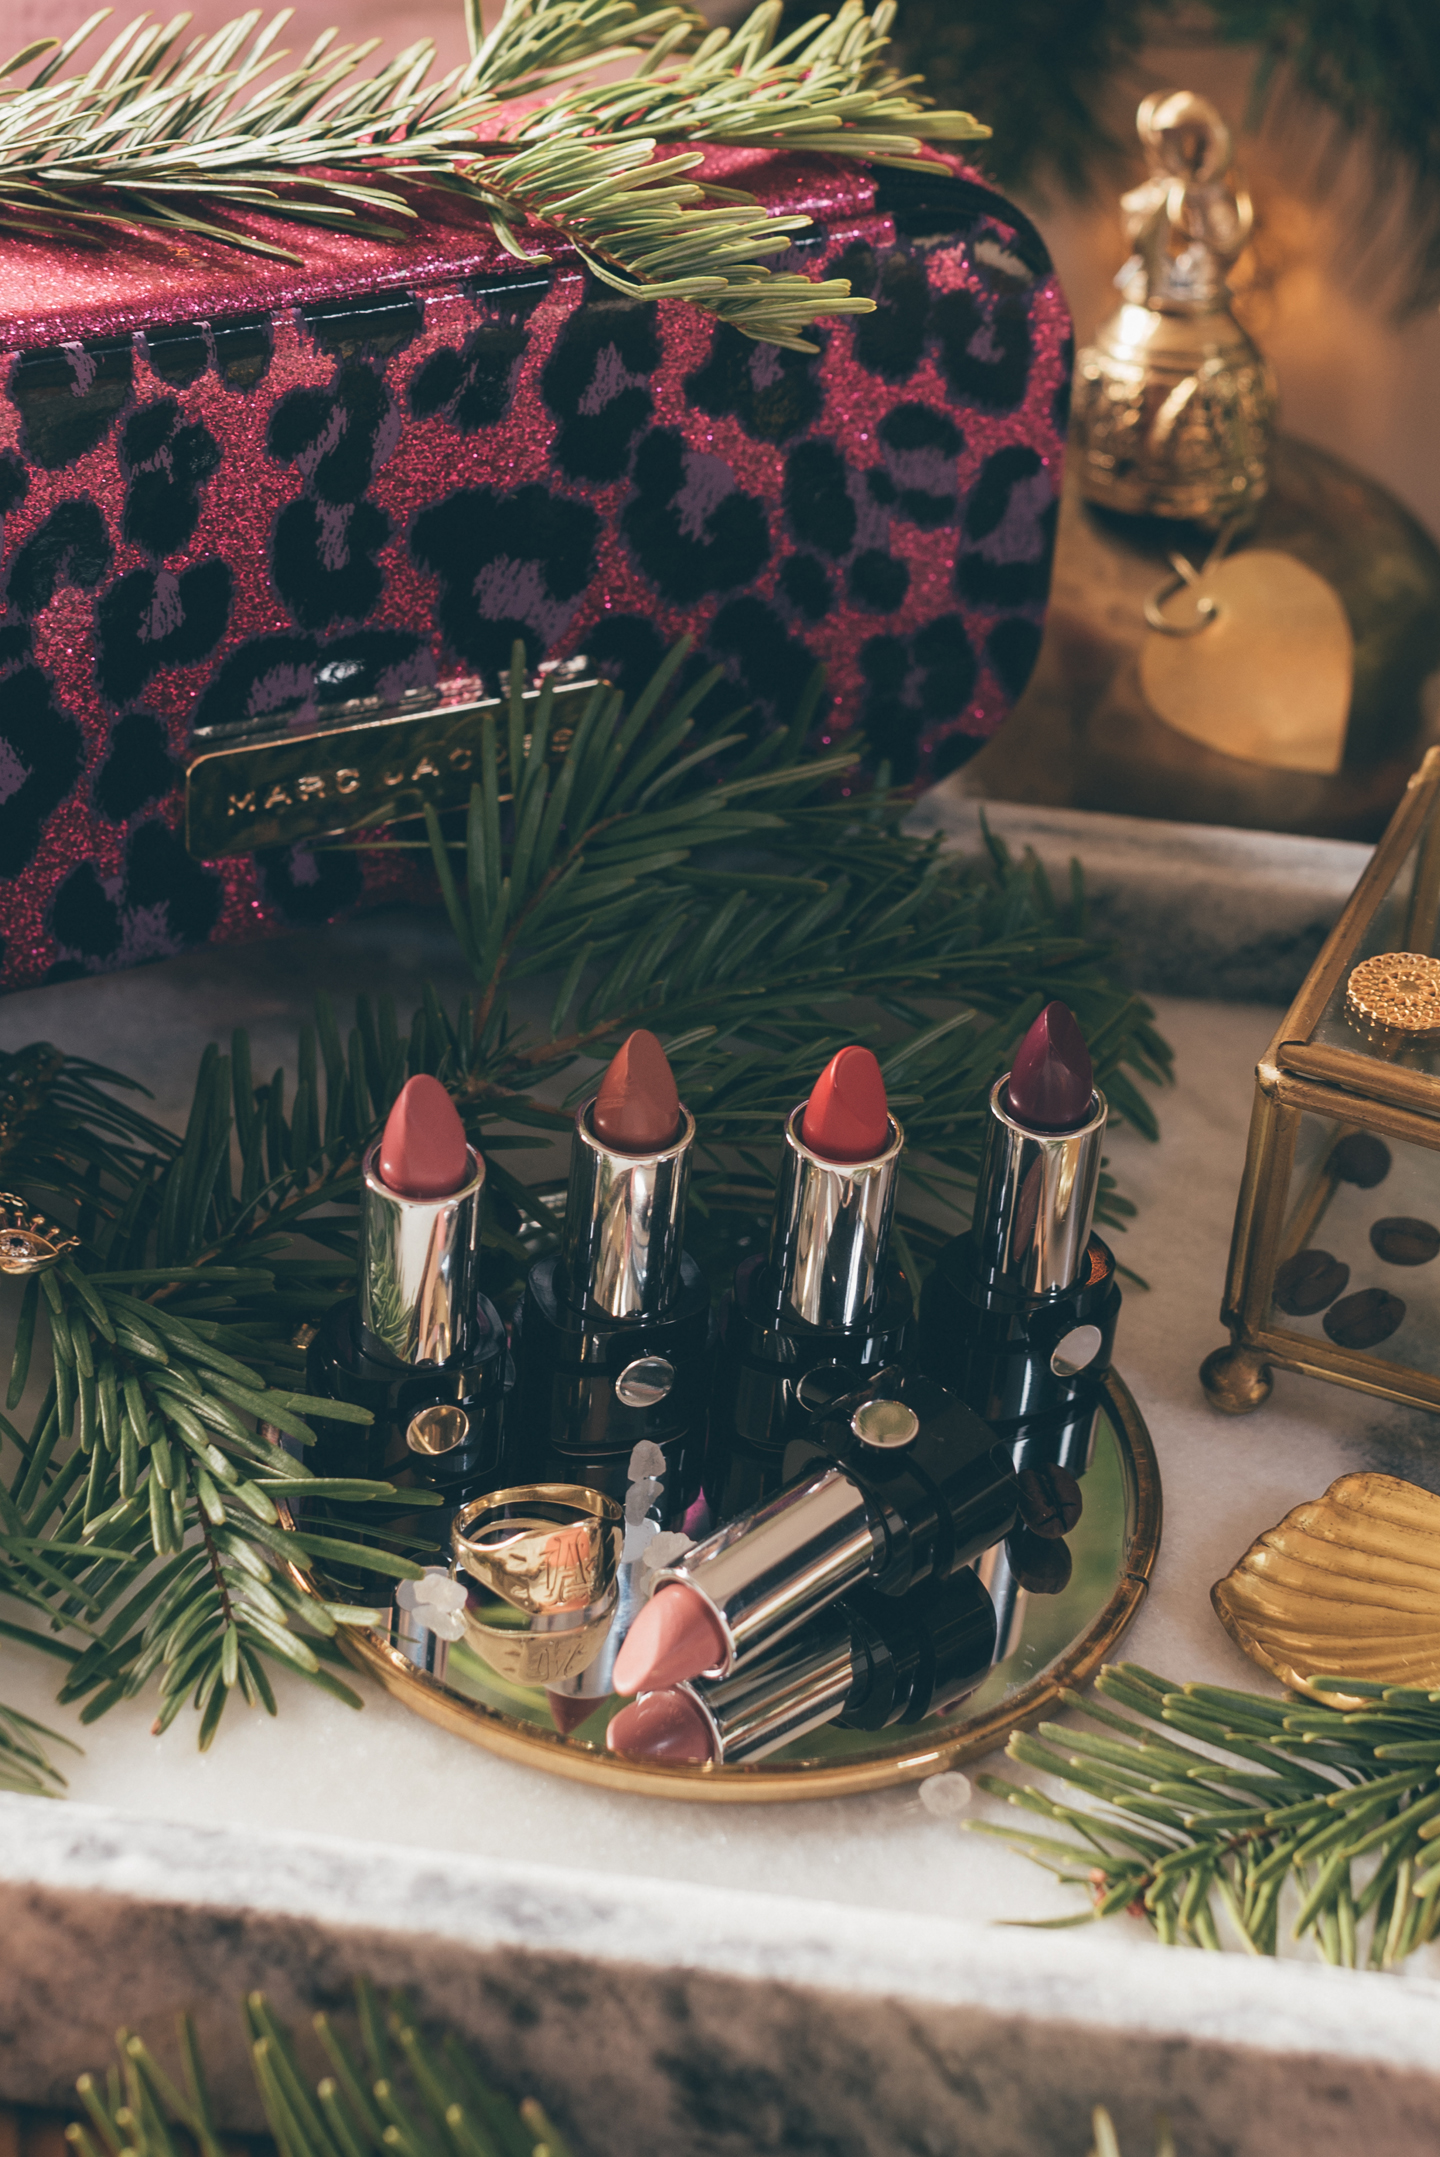 Gift Guide Cruelty Free Beauty Linda's Wholesome Life Marc Jacobs Beauty